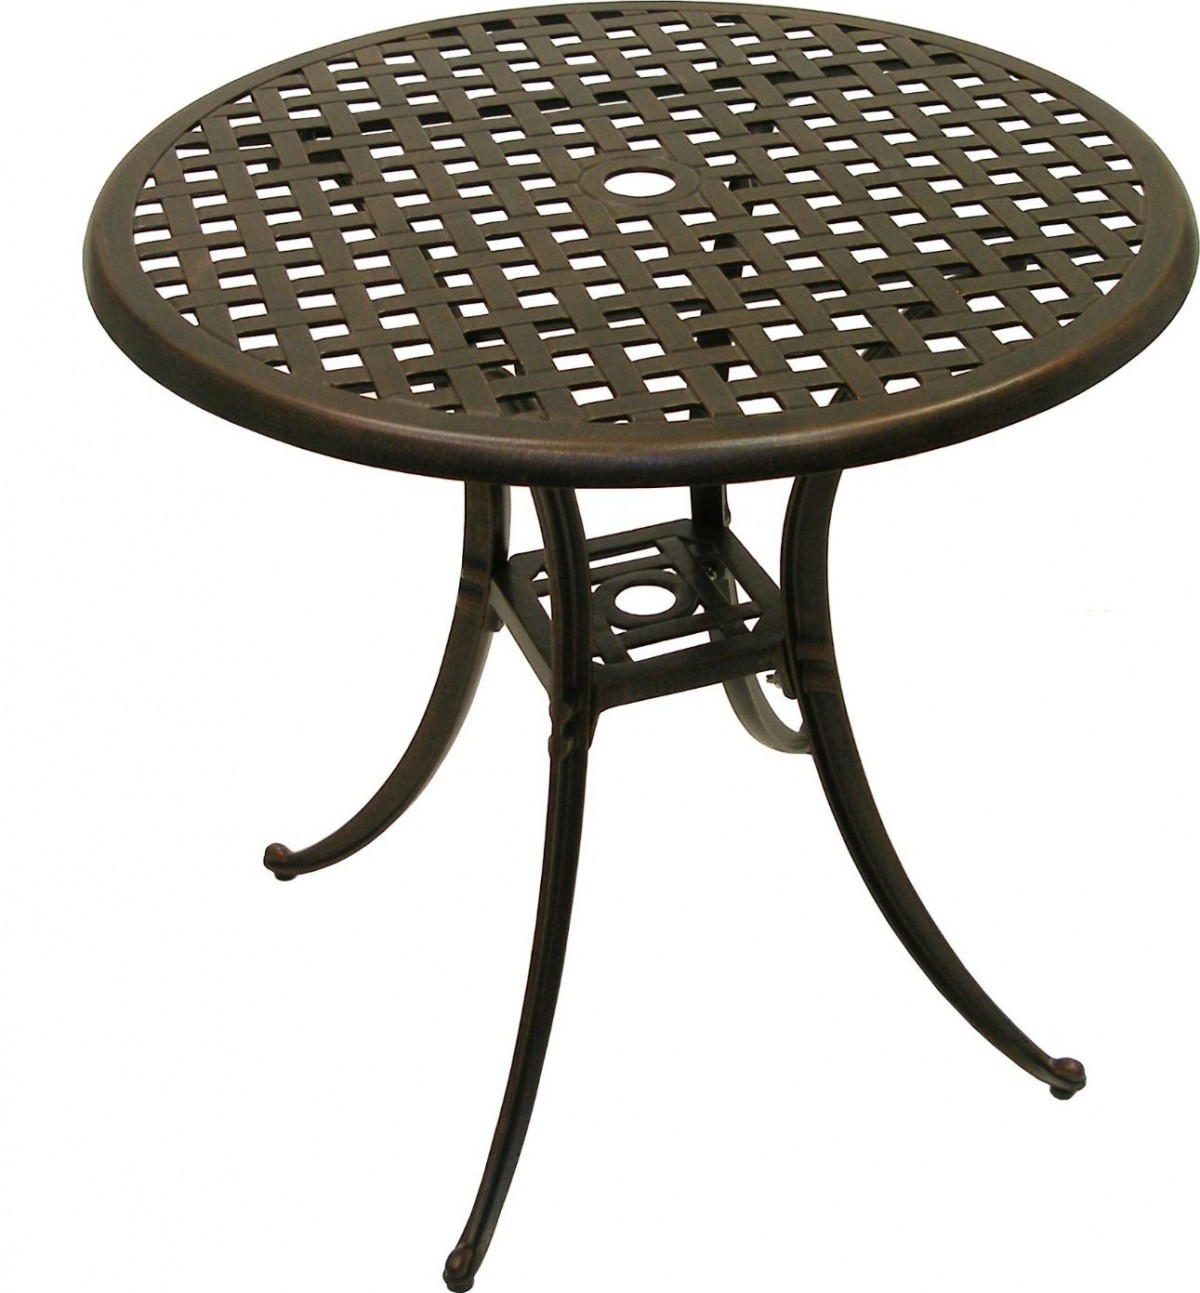 American Trading Company Weave Round Patio Dining Table